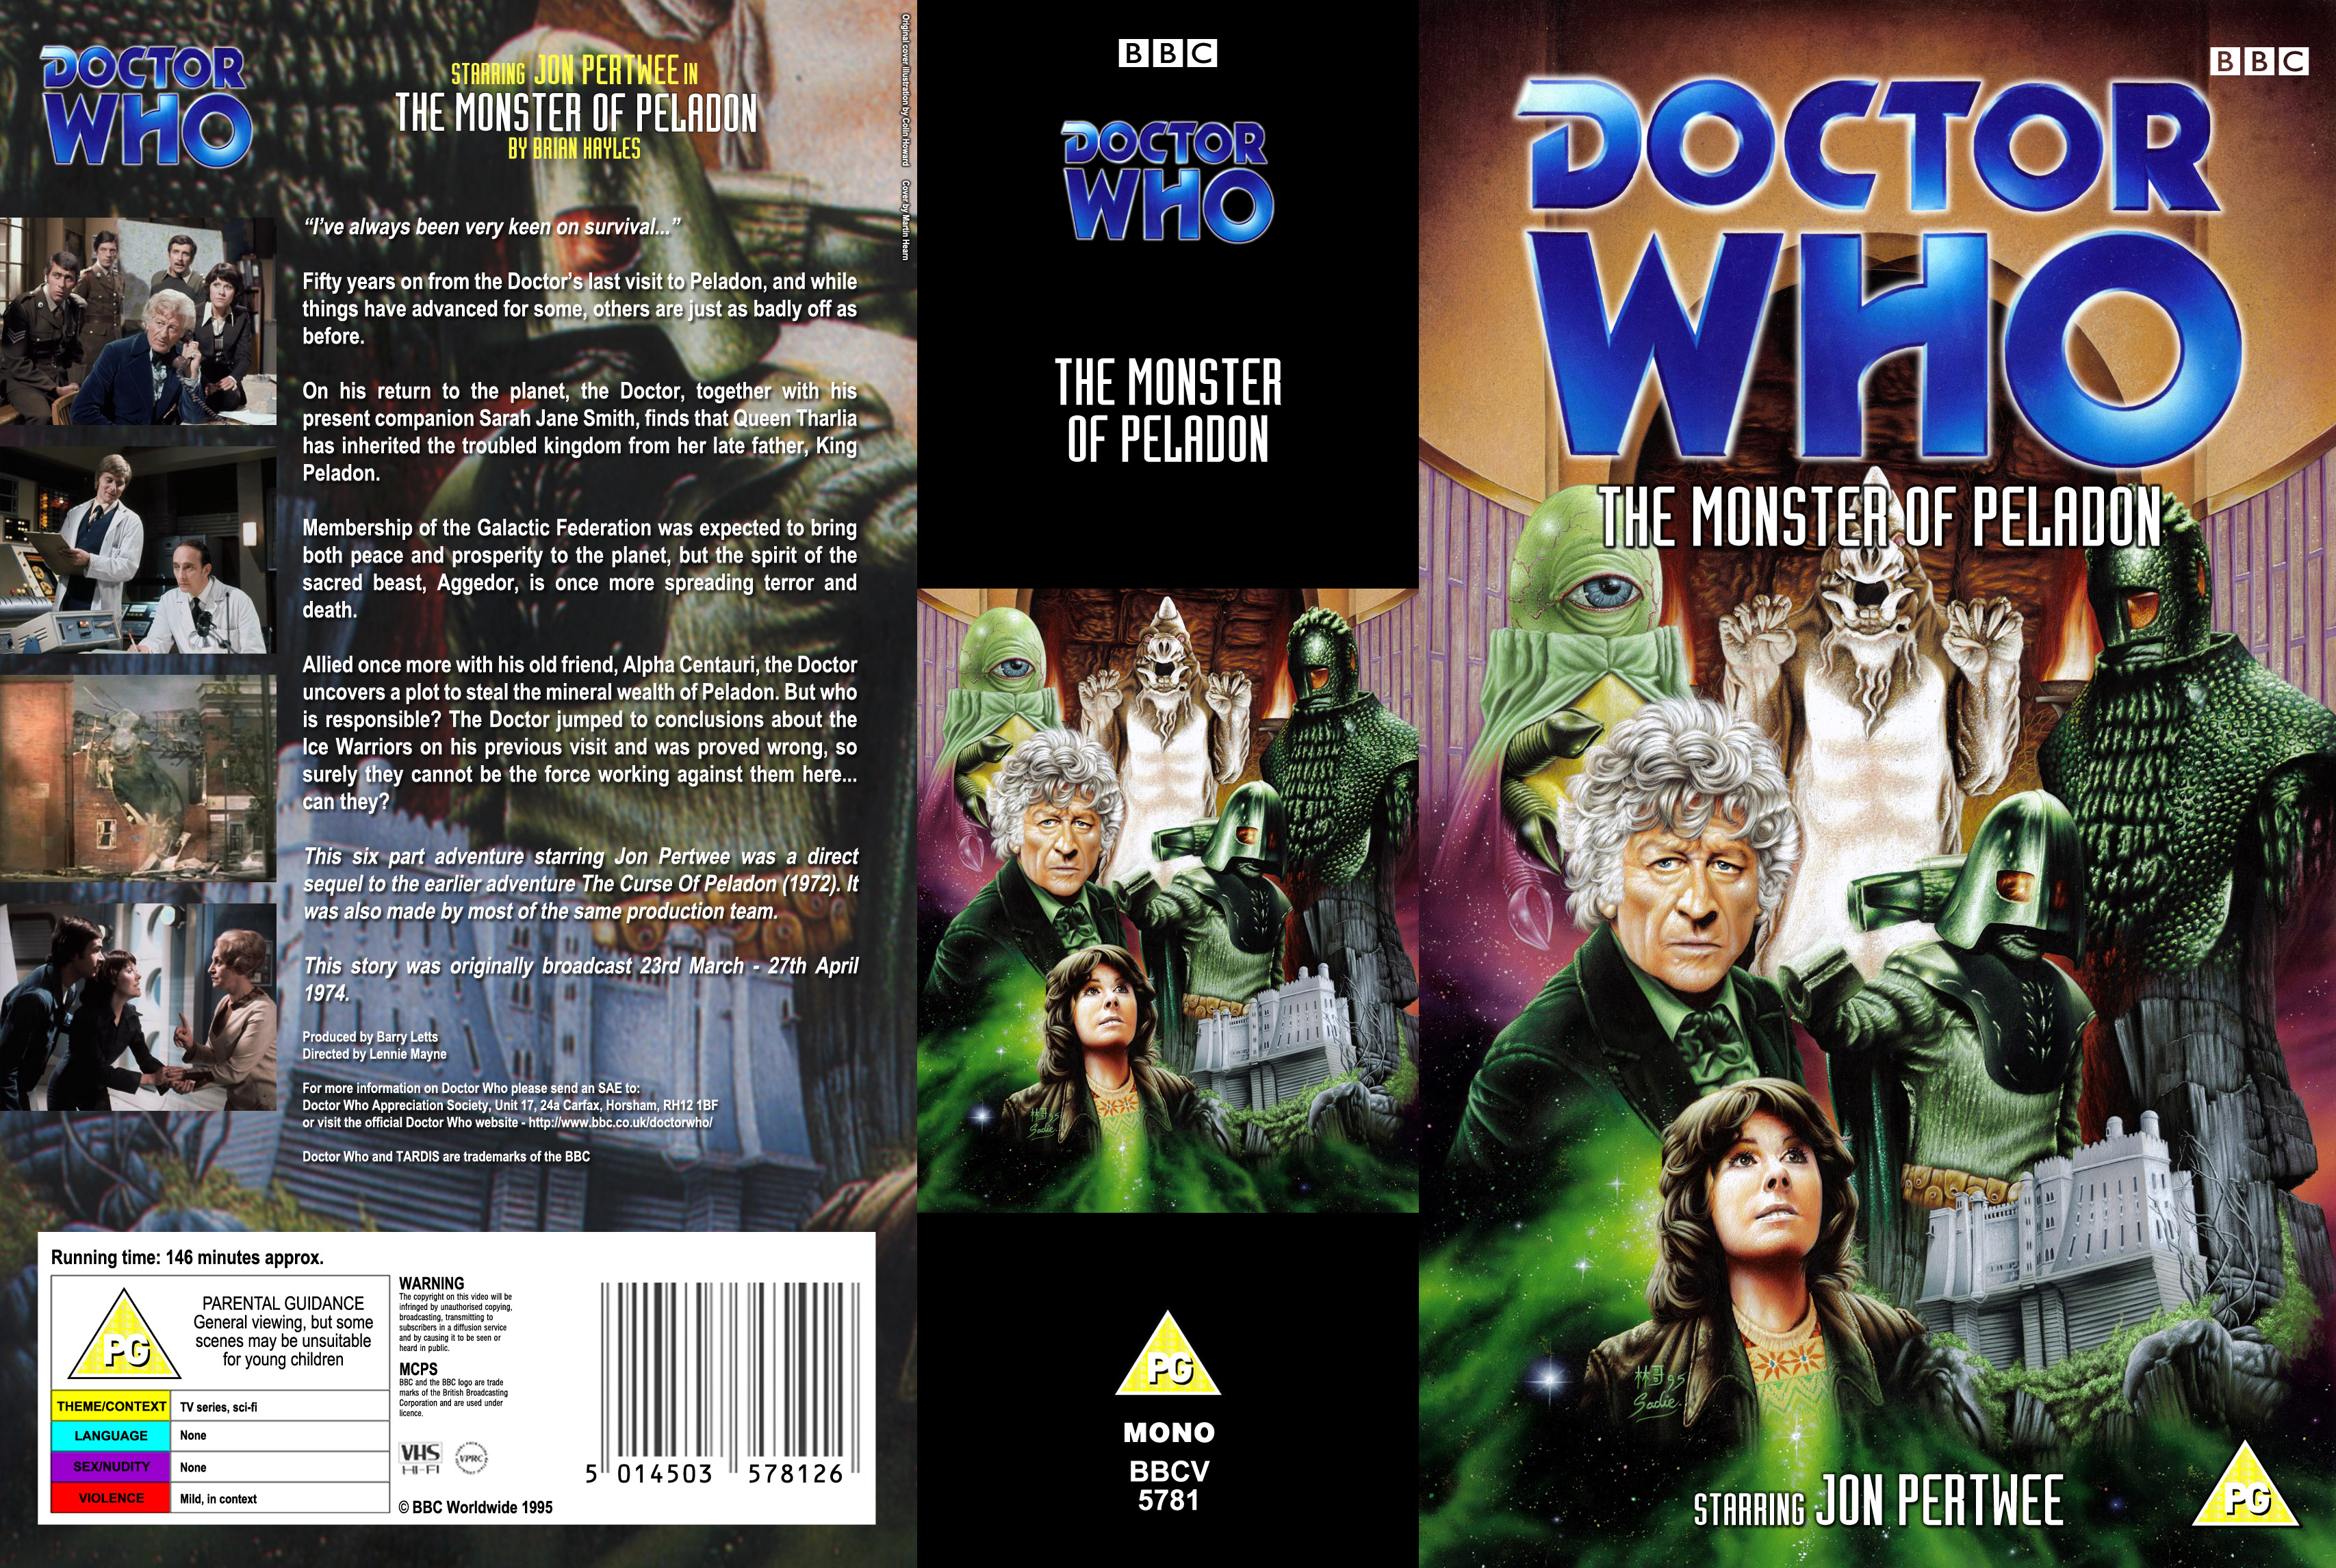 The The Monster of Peladon VHS